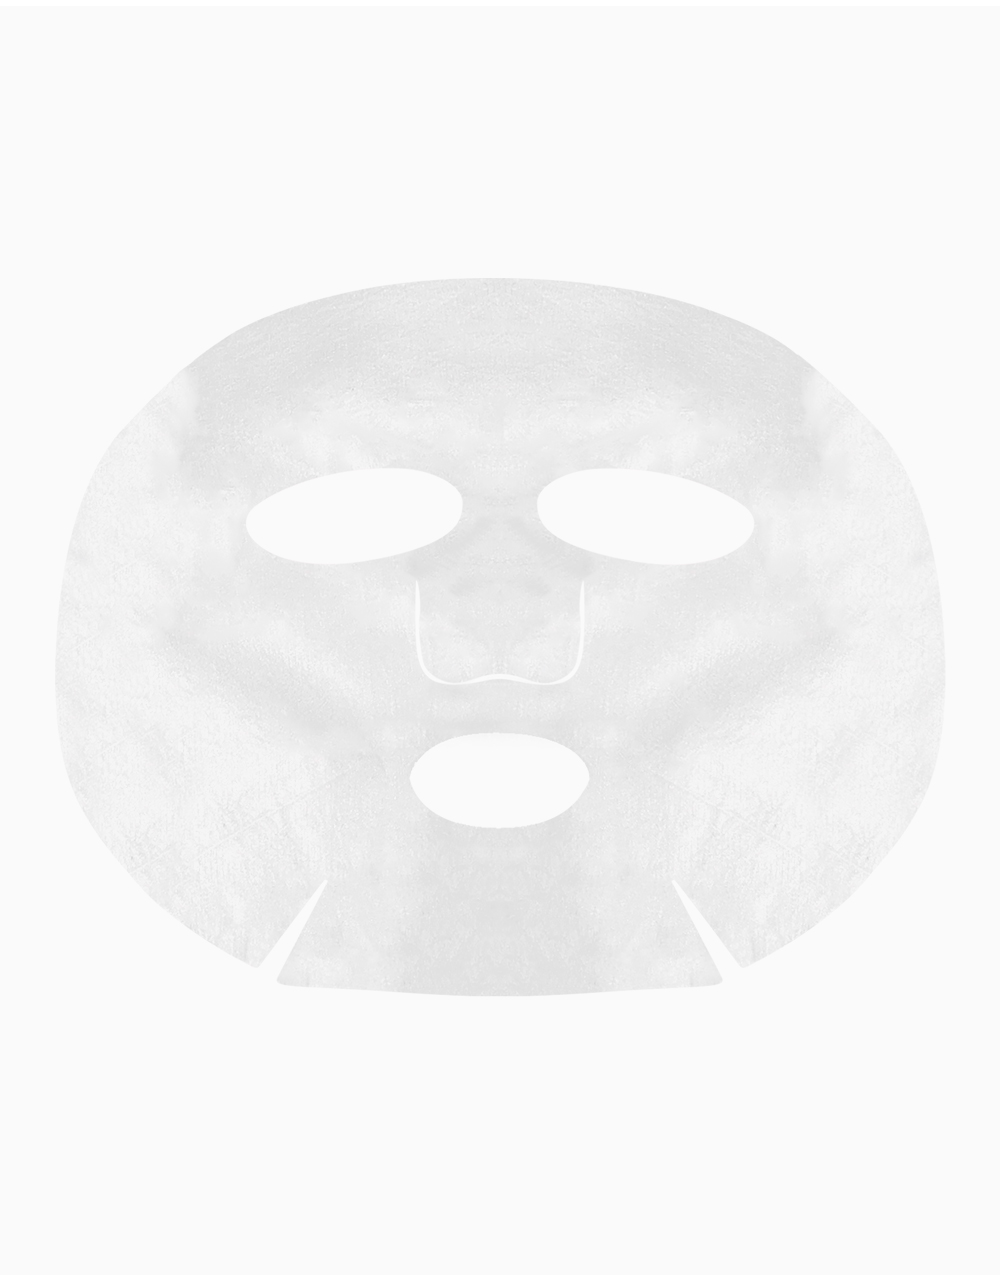 Pure Skin Red Ginseng Essence Mask Sheet by Esfolio